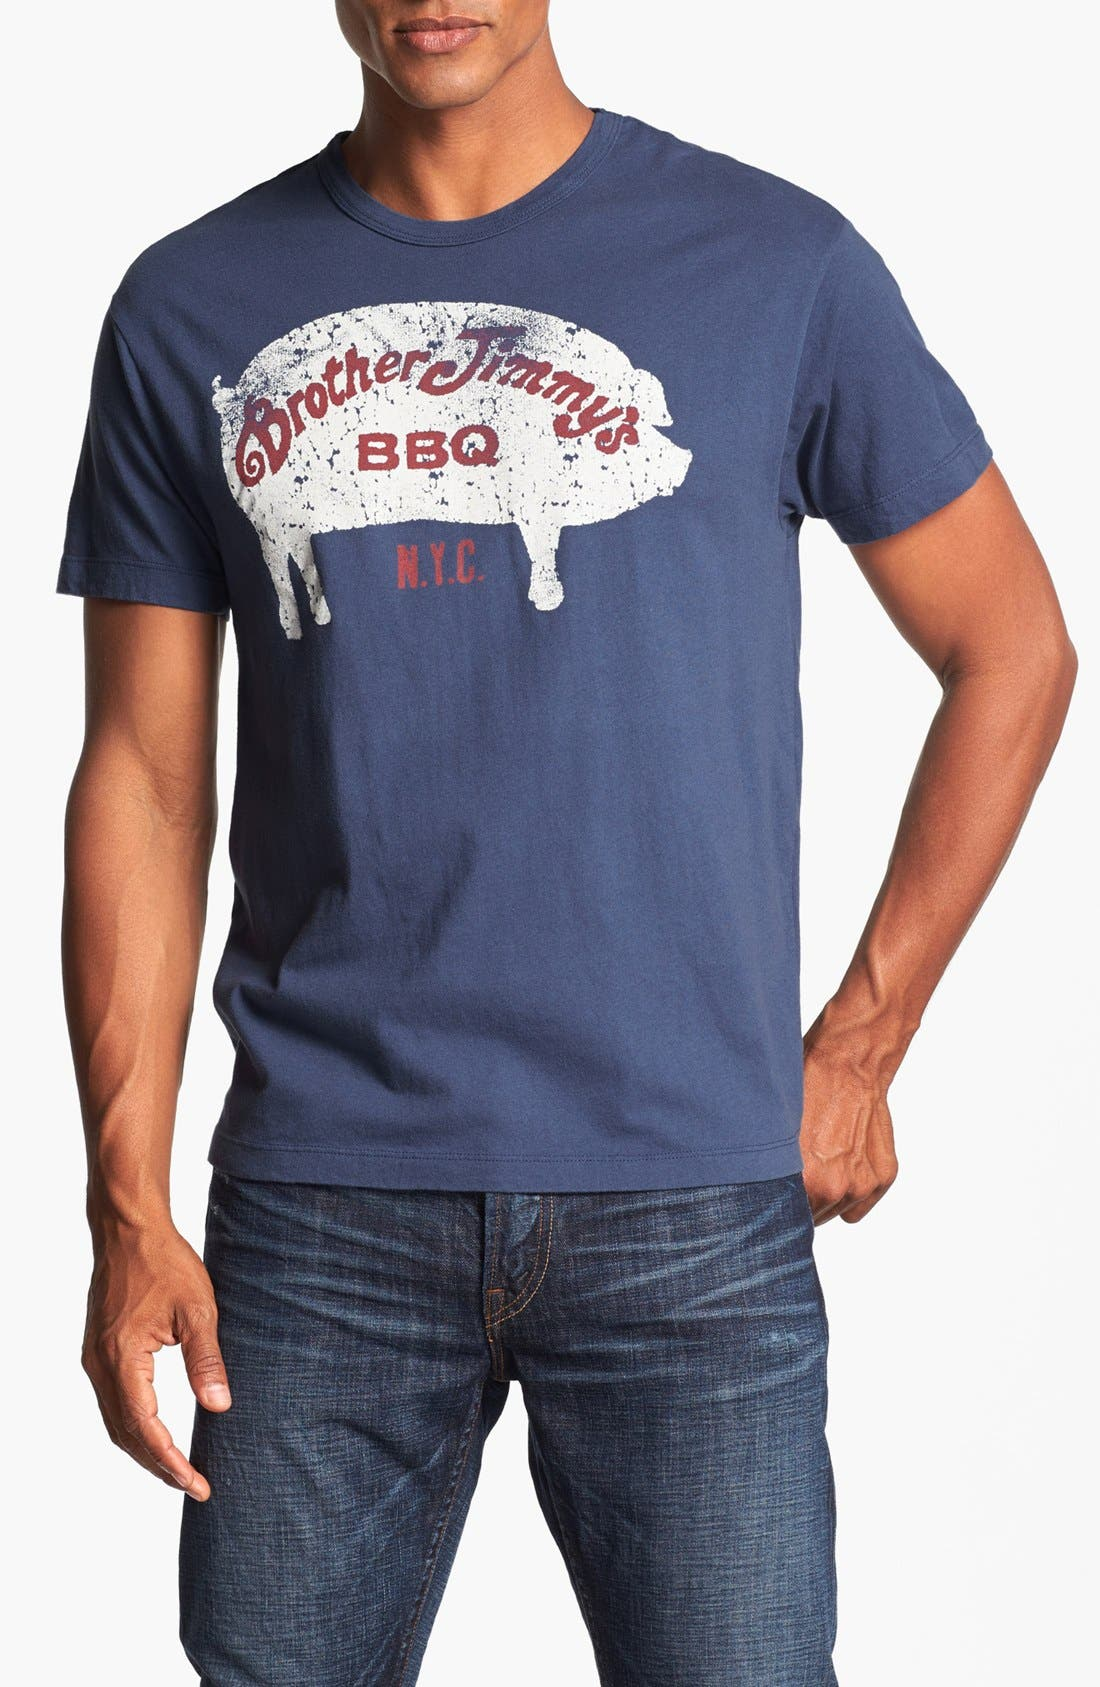 Alternate Image 1 Selected - Tailgate 'Brother Jimmy's BBQ' Trim Fit T-Shirt